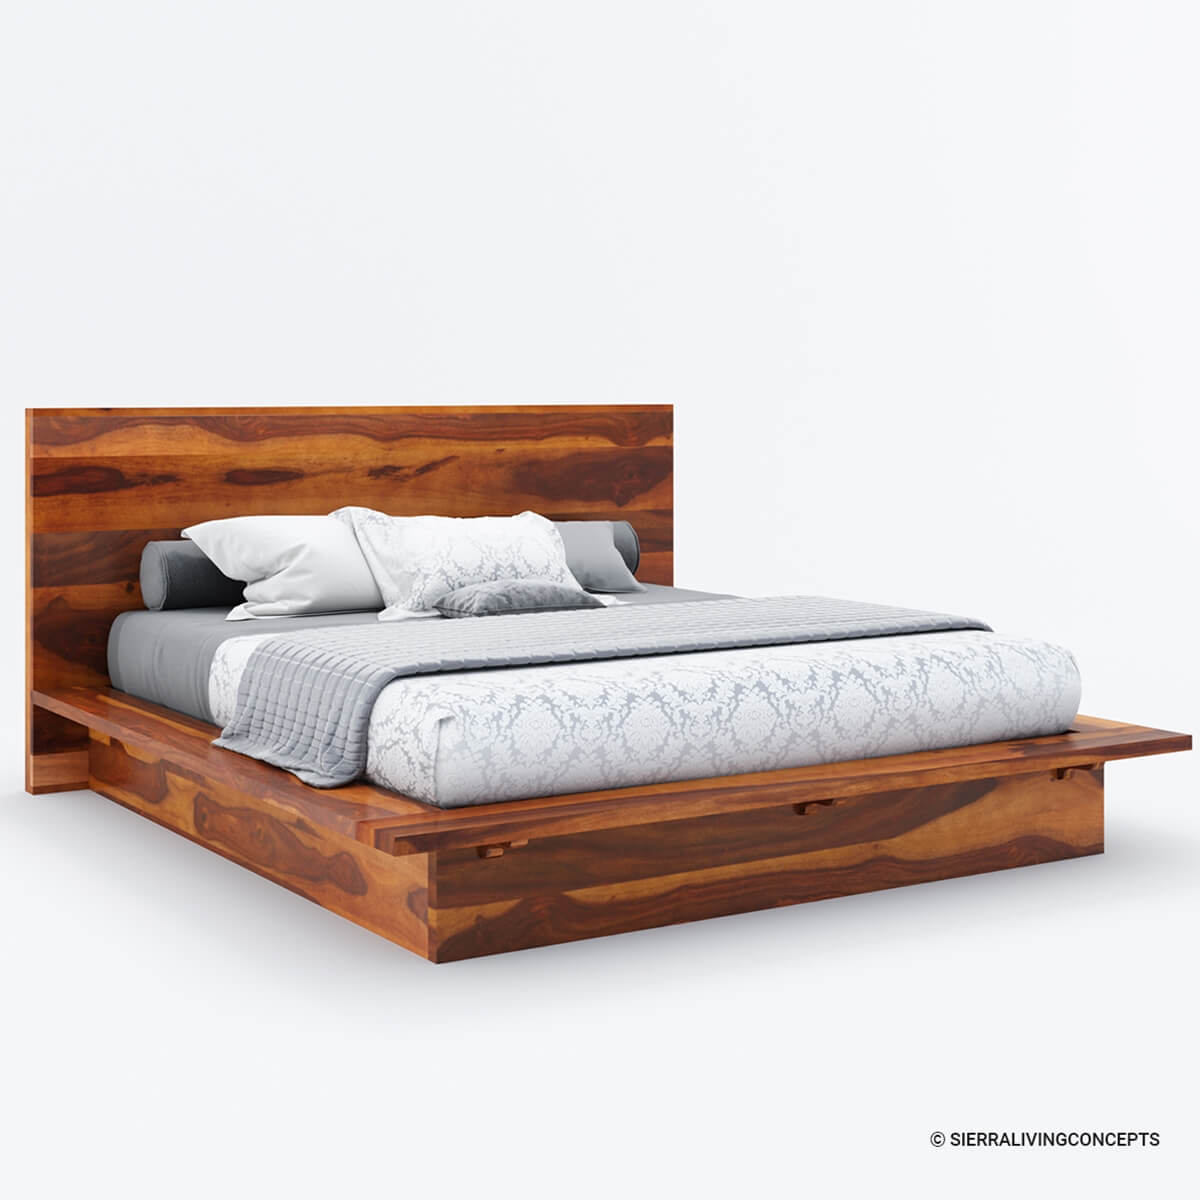 California king size solid wood platform bed frame Platform king bed